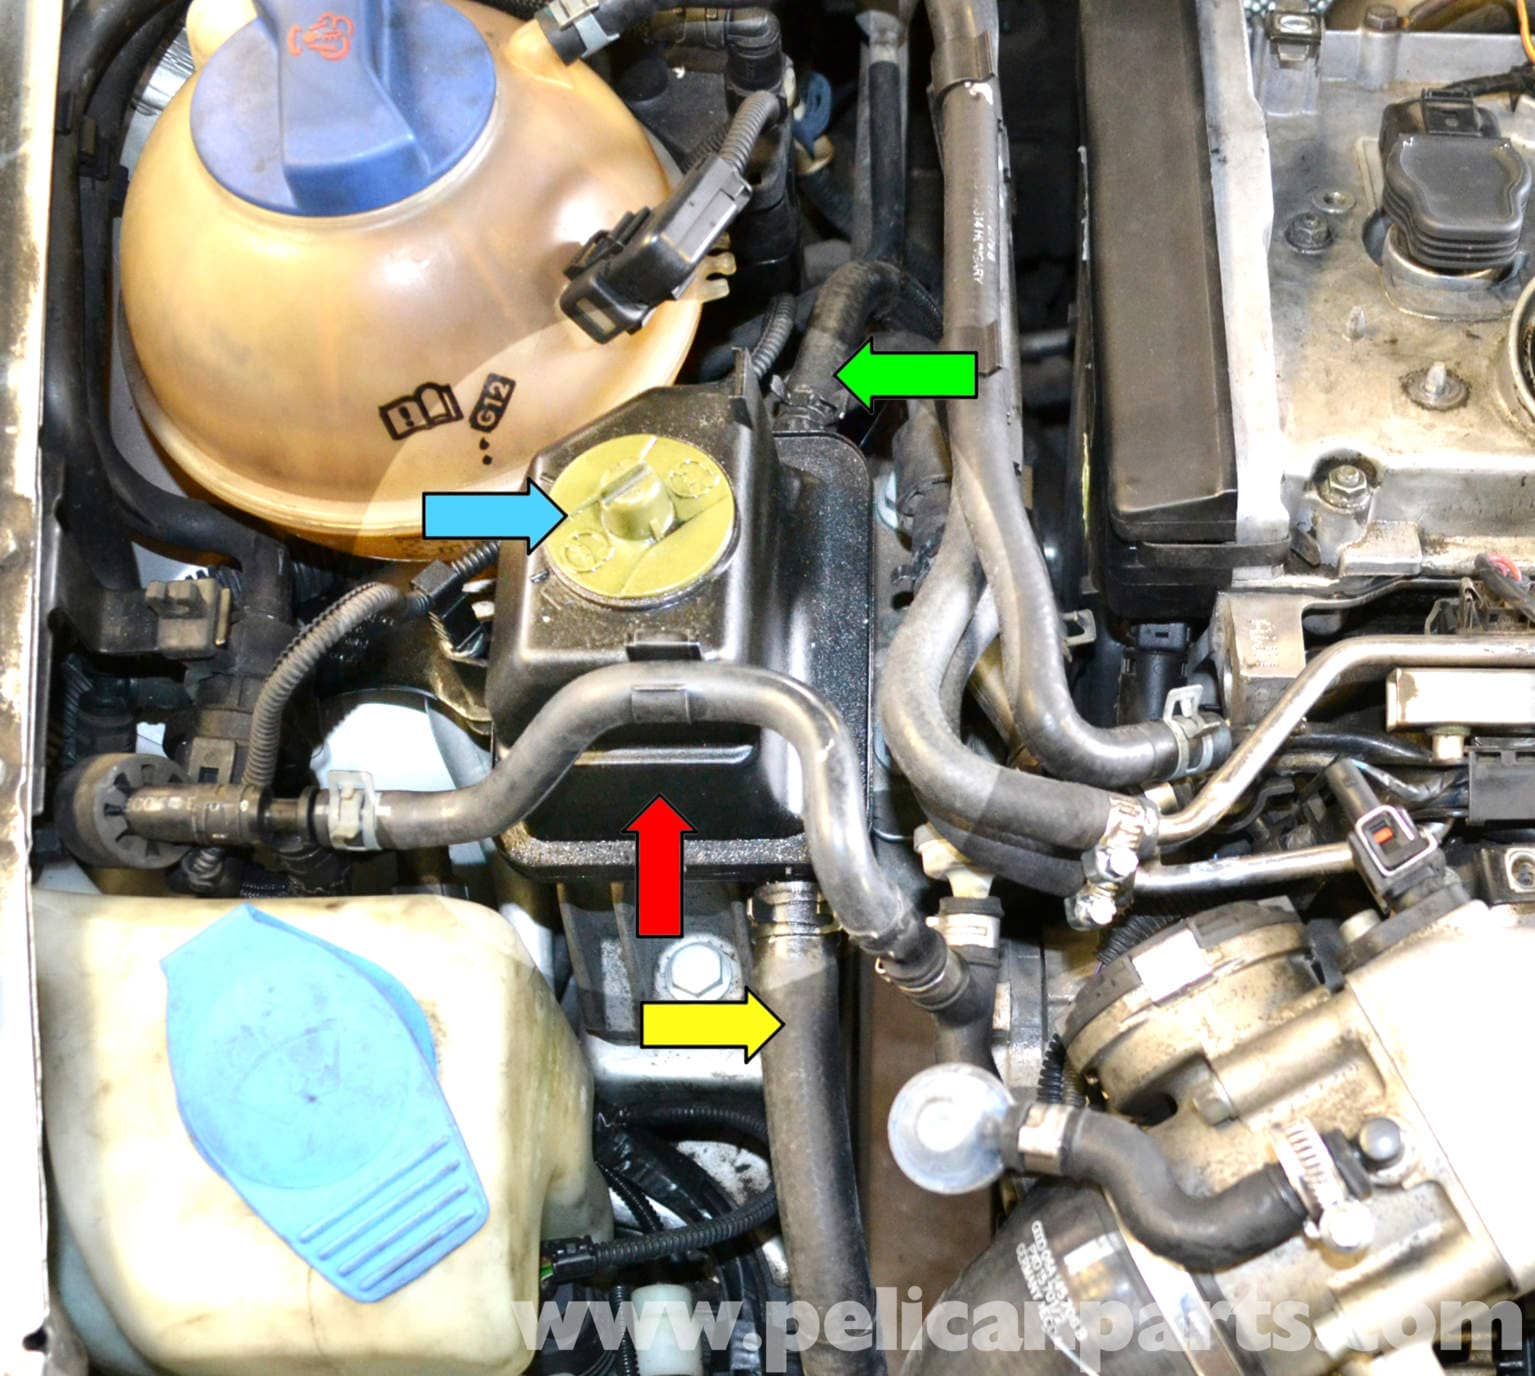 2000 vw jetta engine diagram with 64 Suspen Power Steering Pump And Reservoir Replacement on Volkswagen Coil Location as well 1999 Volkswagen Beetle Fuse Box further Motores Para Volkswagen Jetta En Venta likewise Chevy Cruze Fuse Box Diagram in addition 6uyeq Volkswagen Passat 2 0t Getting Error Codes P2004.